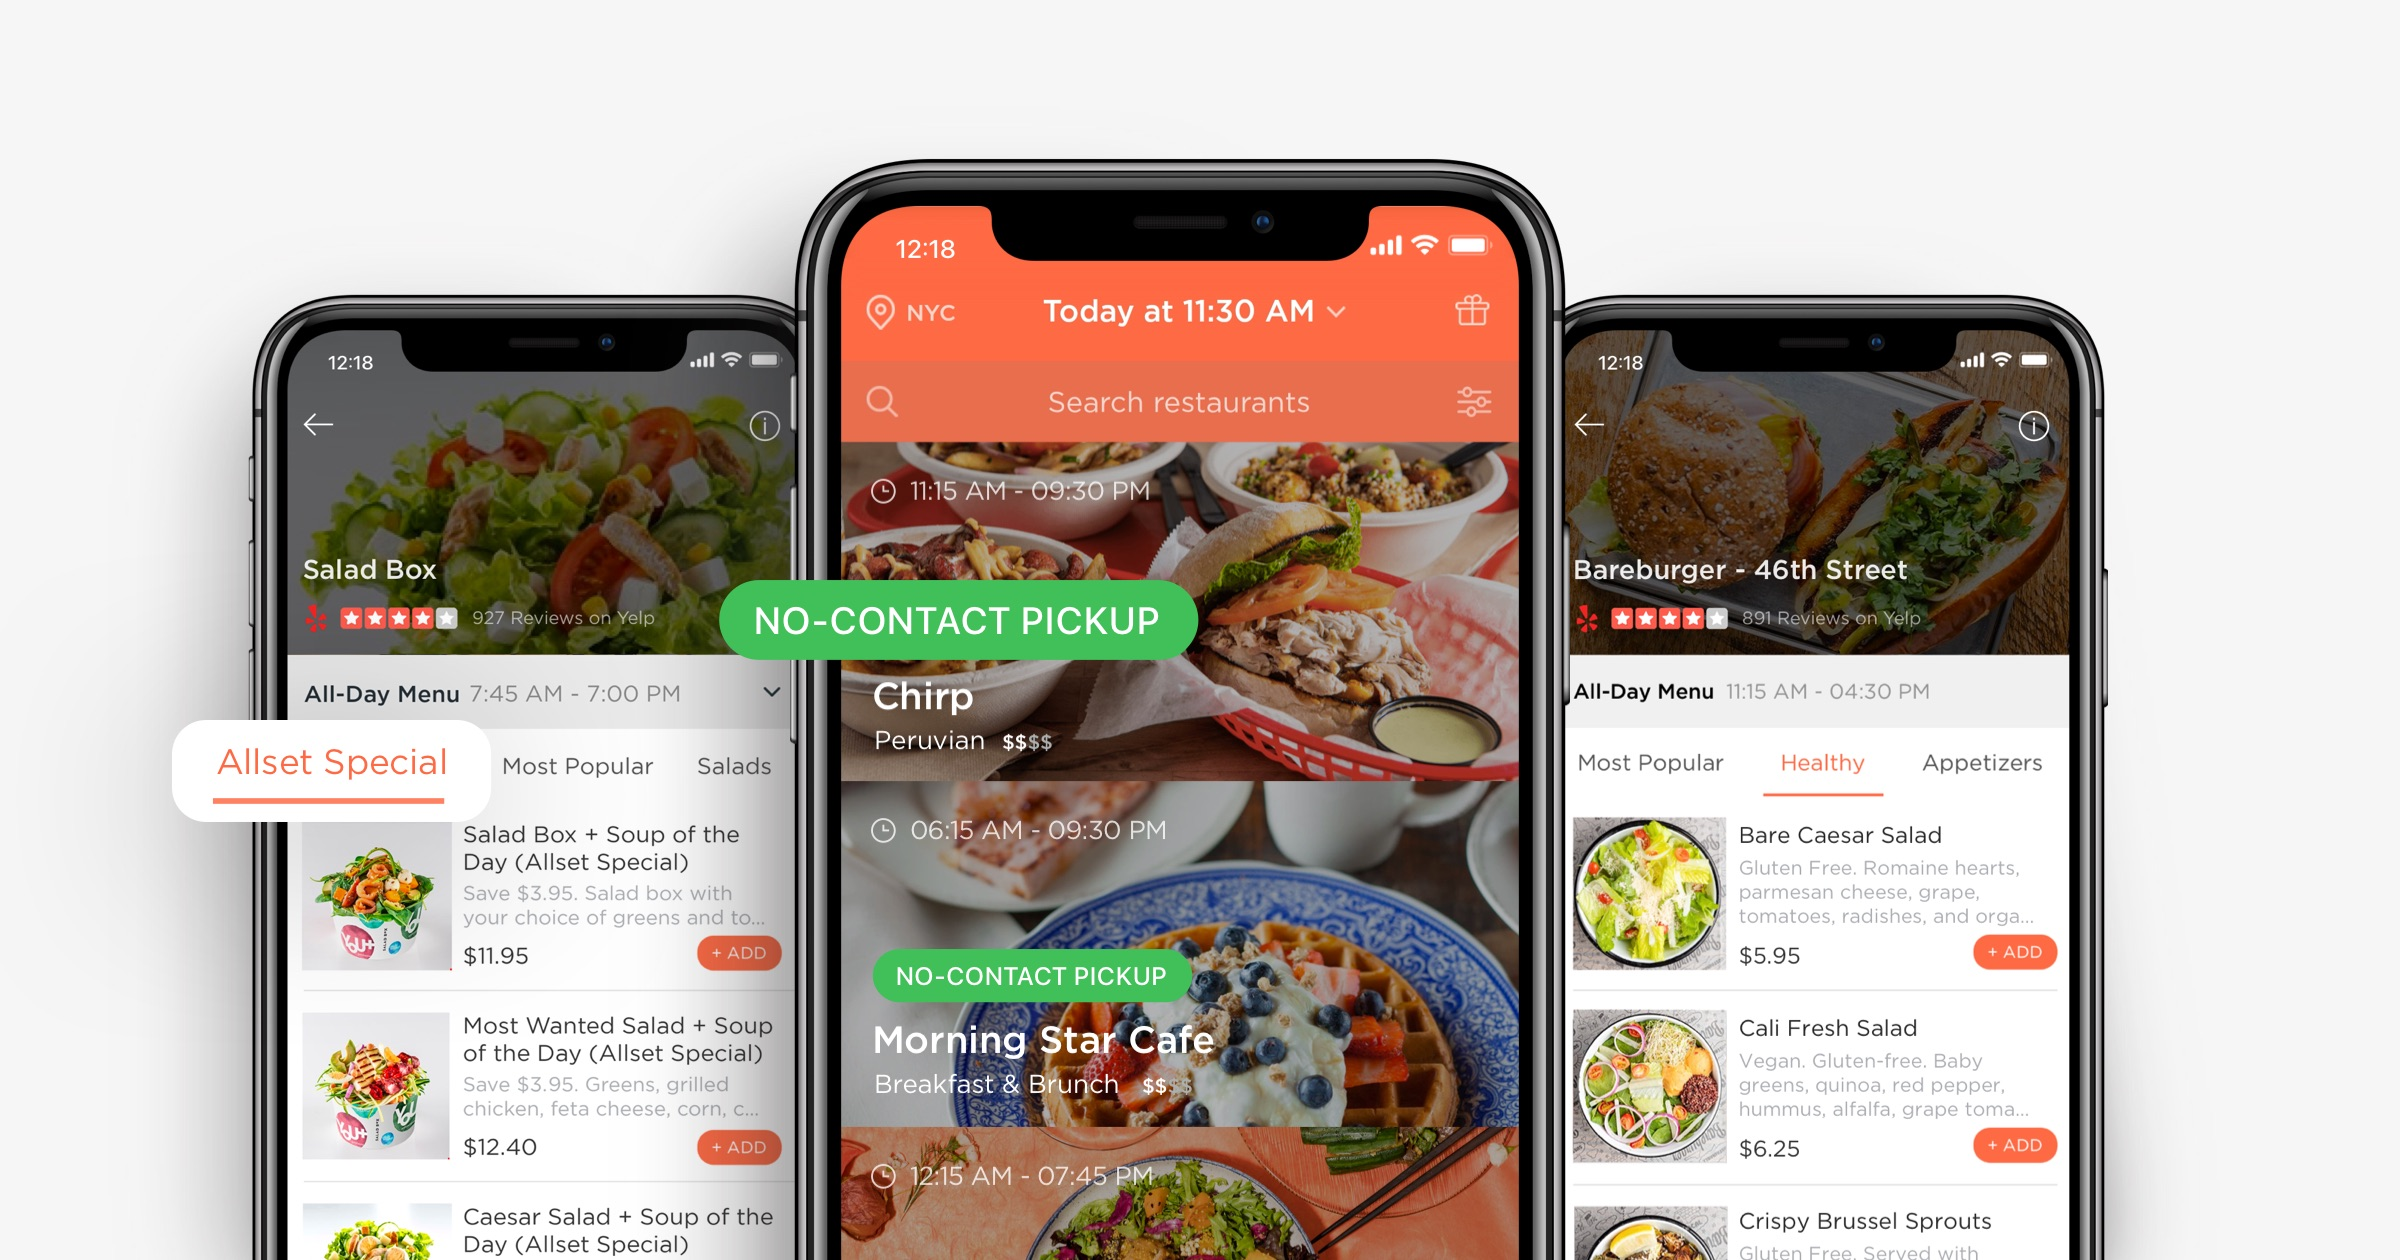 Dining and takeout startup Allset raises $8.25M as it adapts to life under lockdown